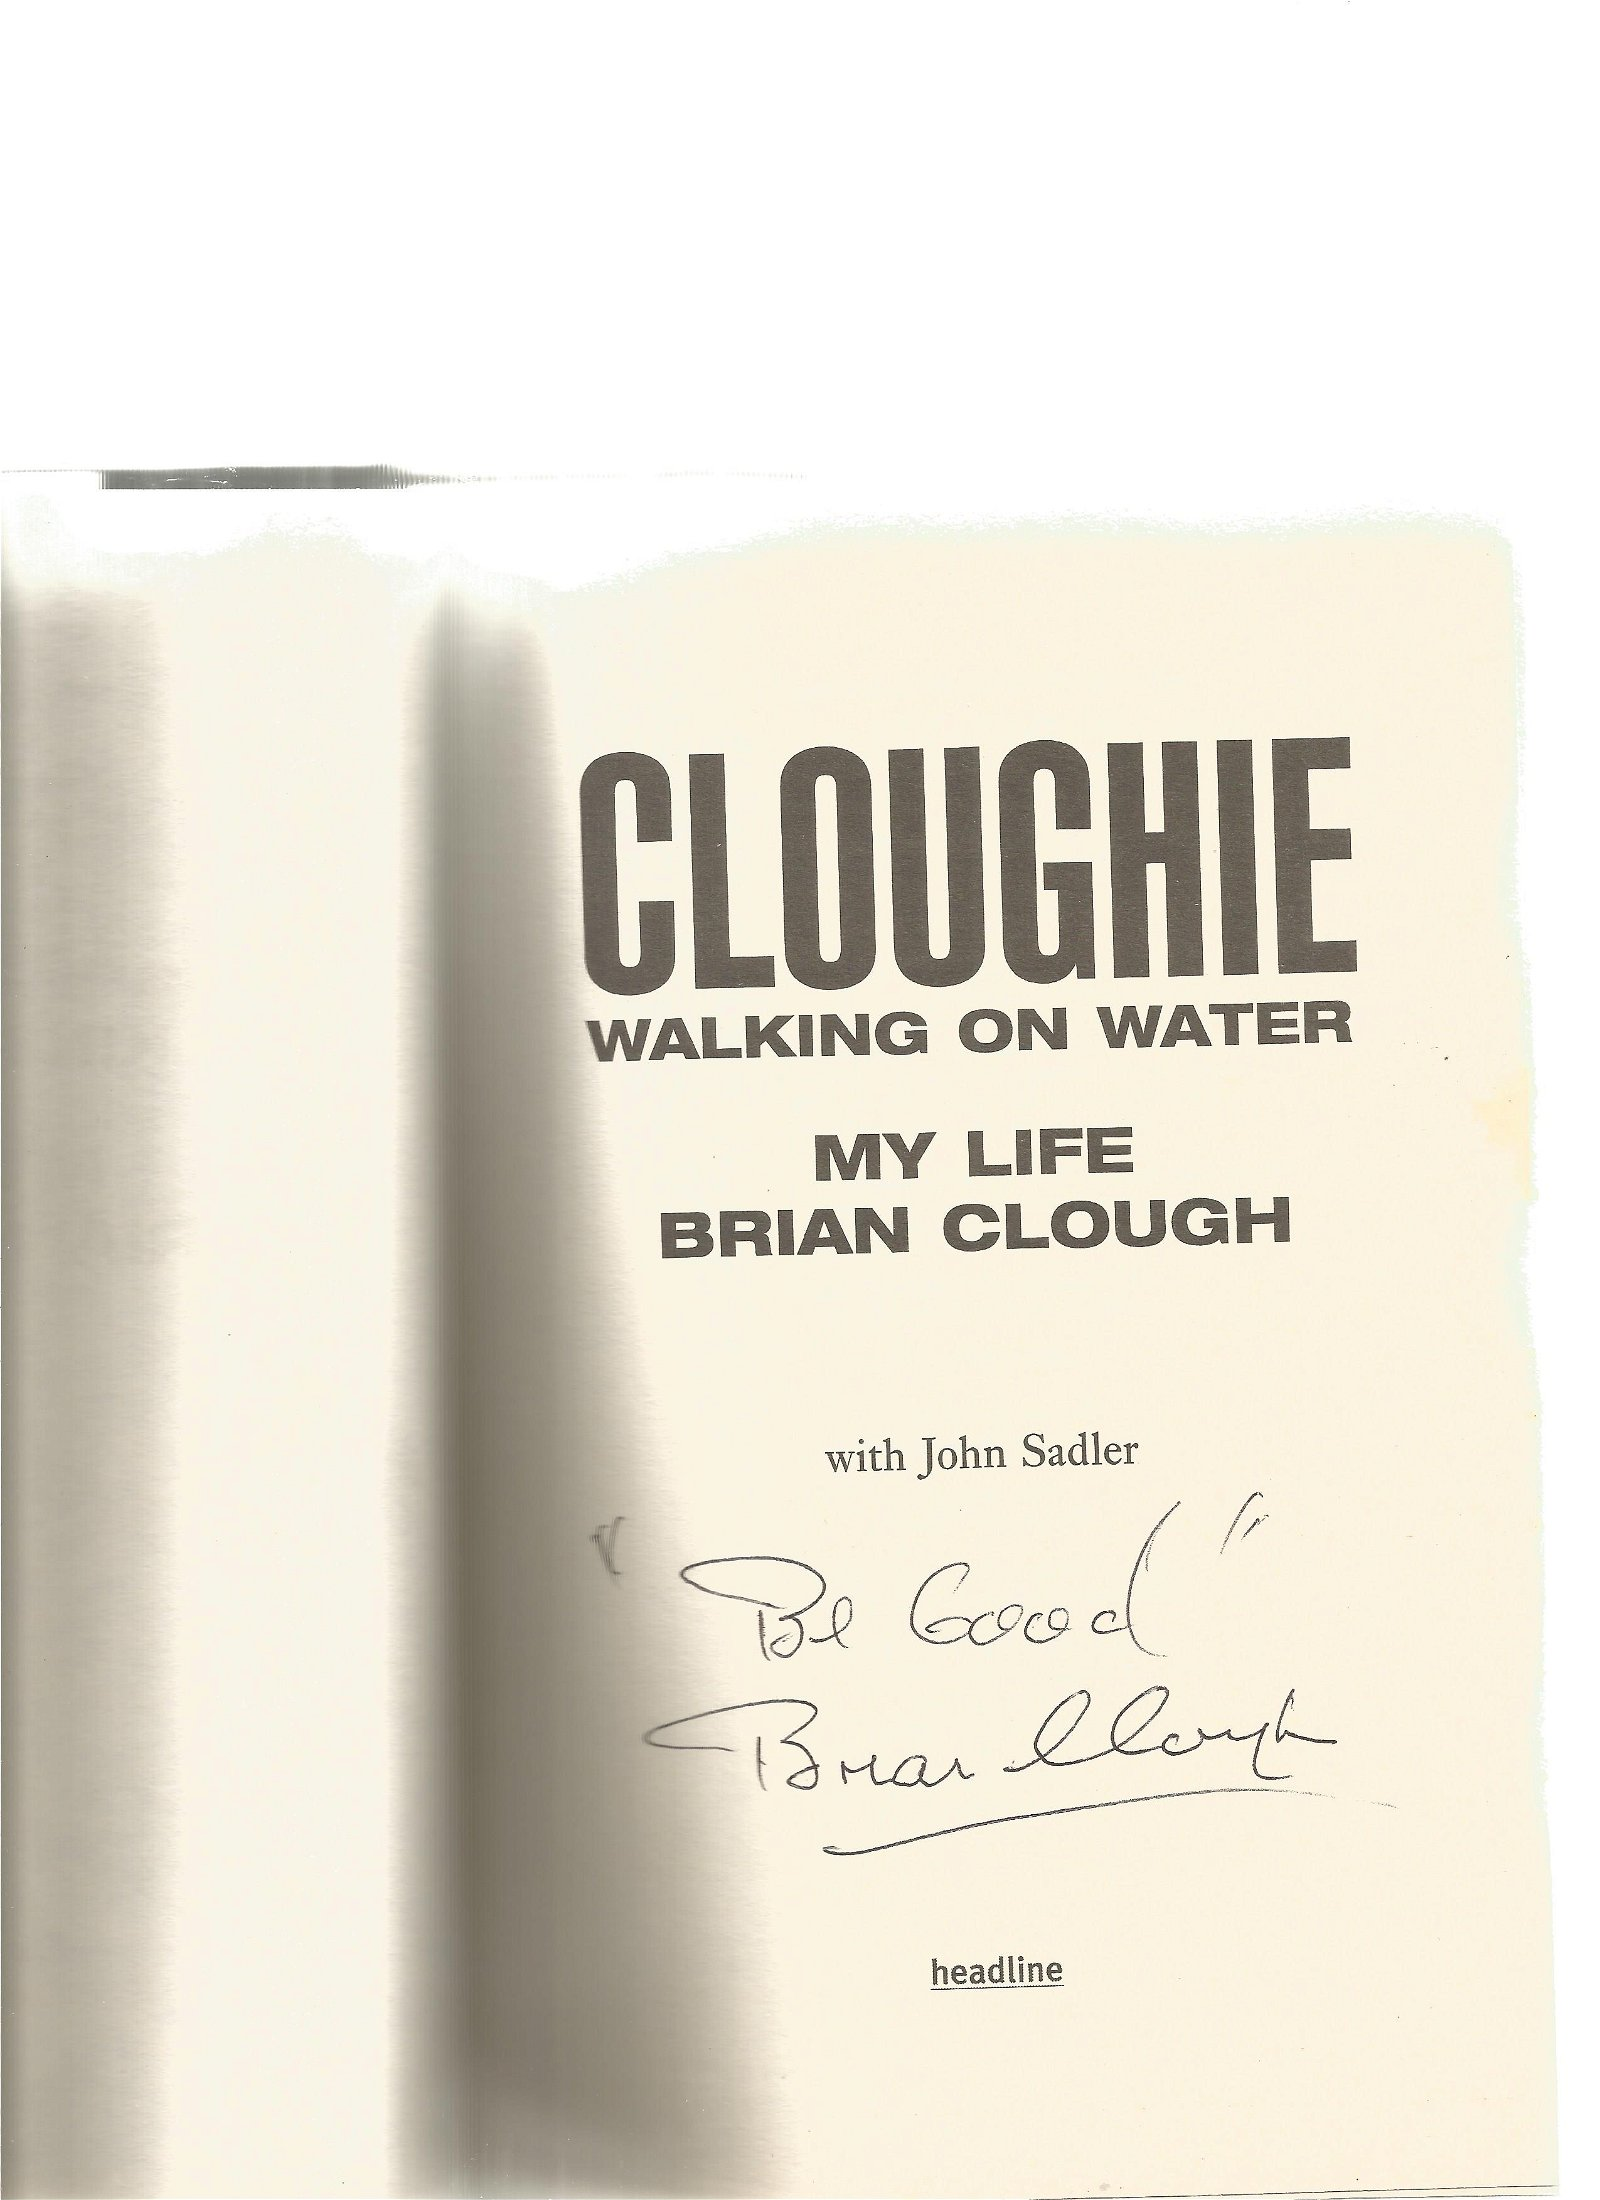 Cloughie Hardback book signed inside by the legendary